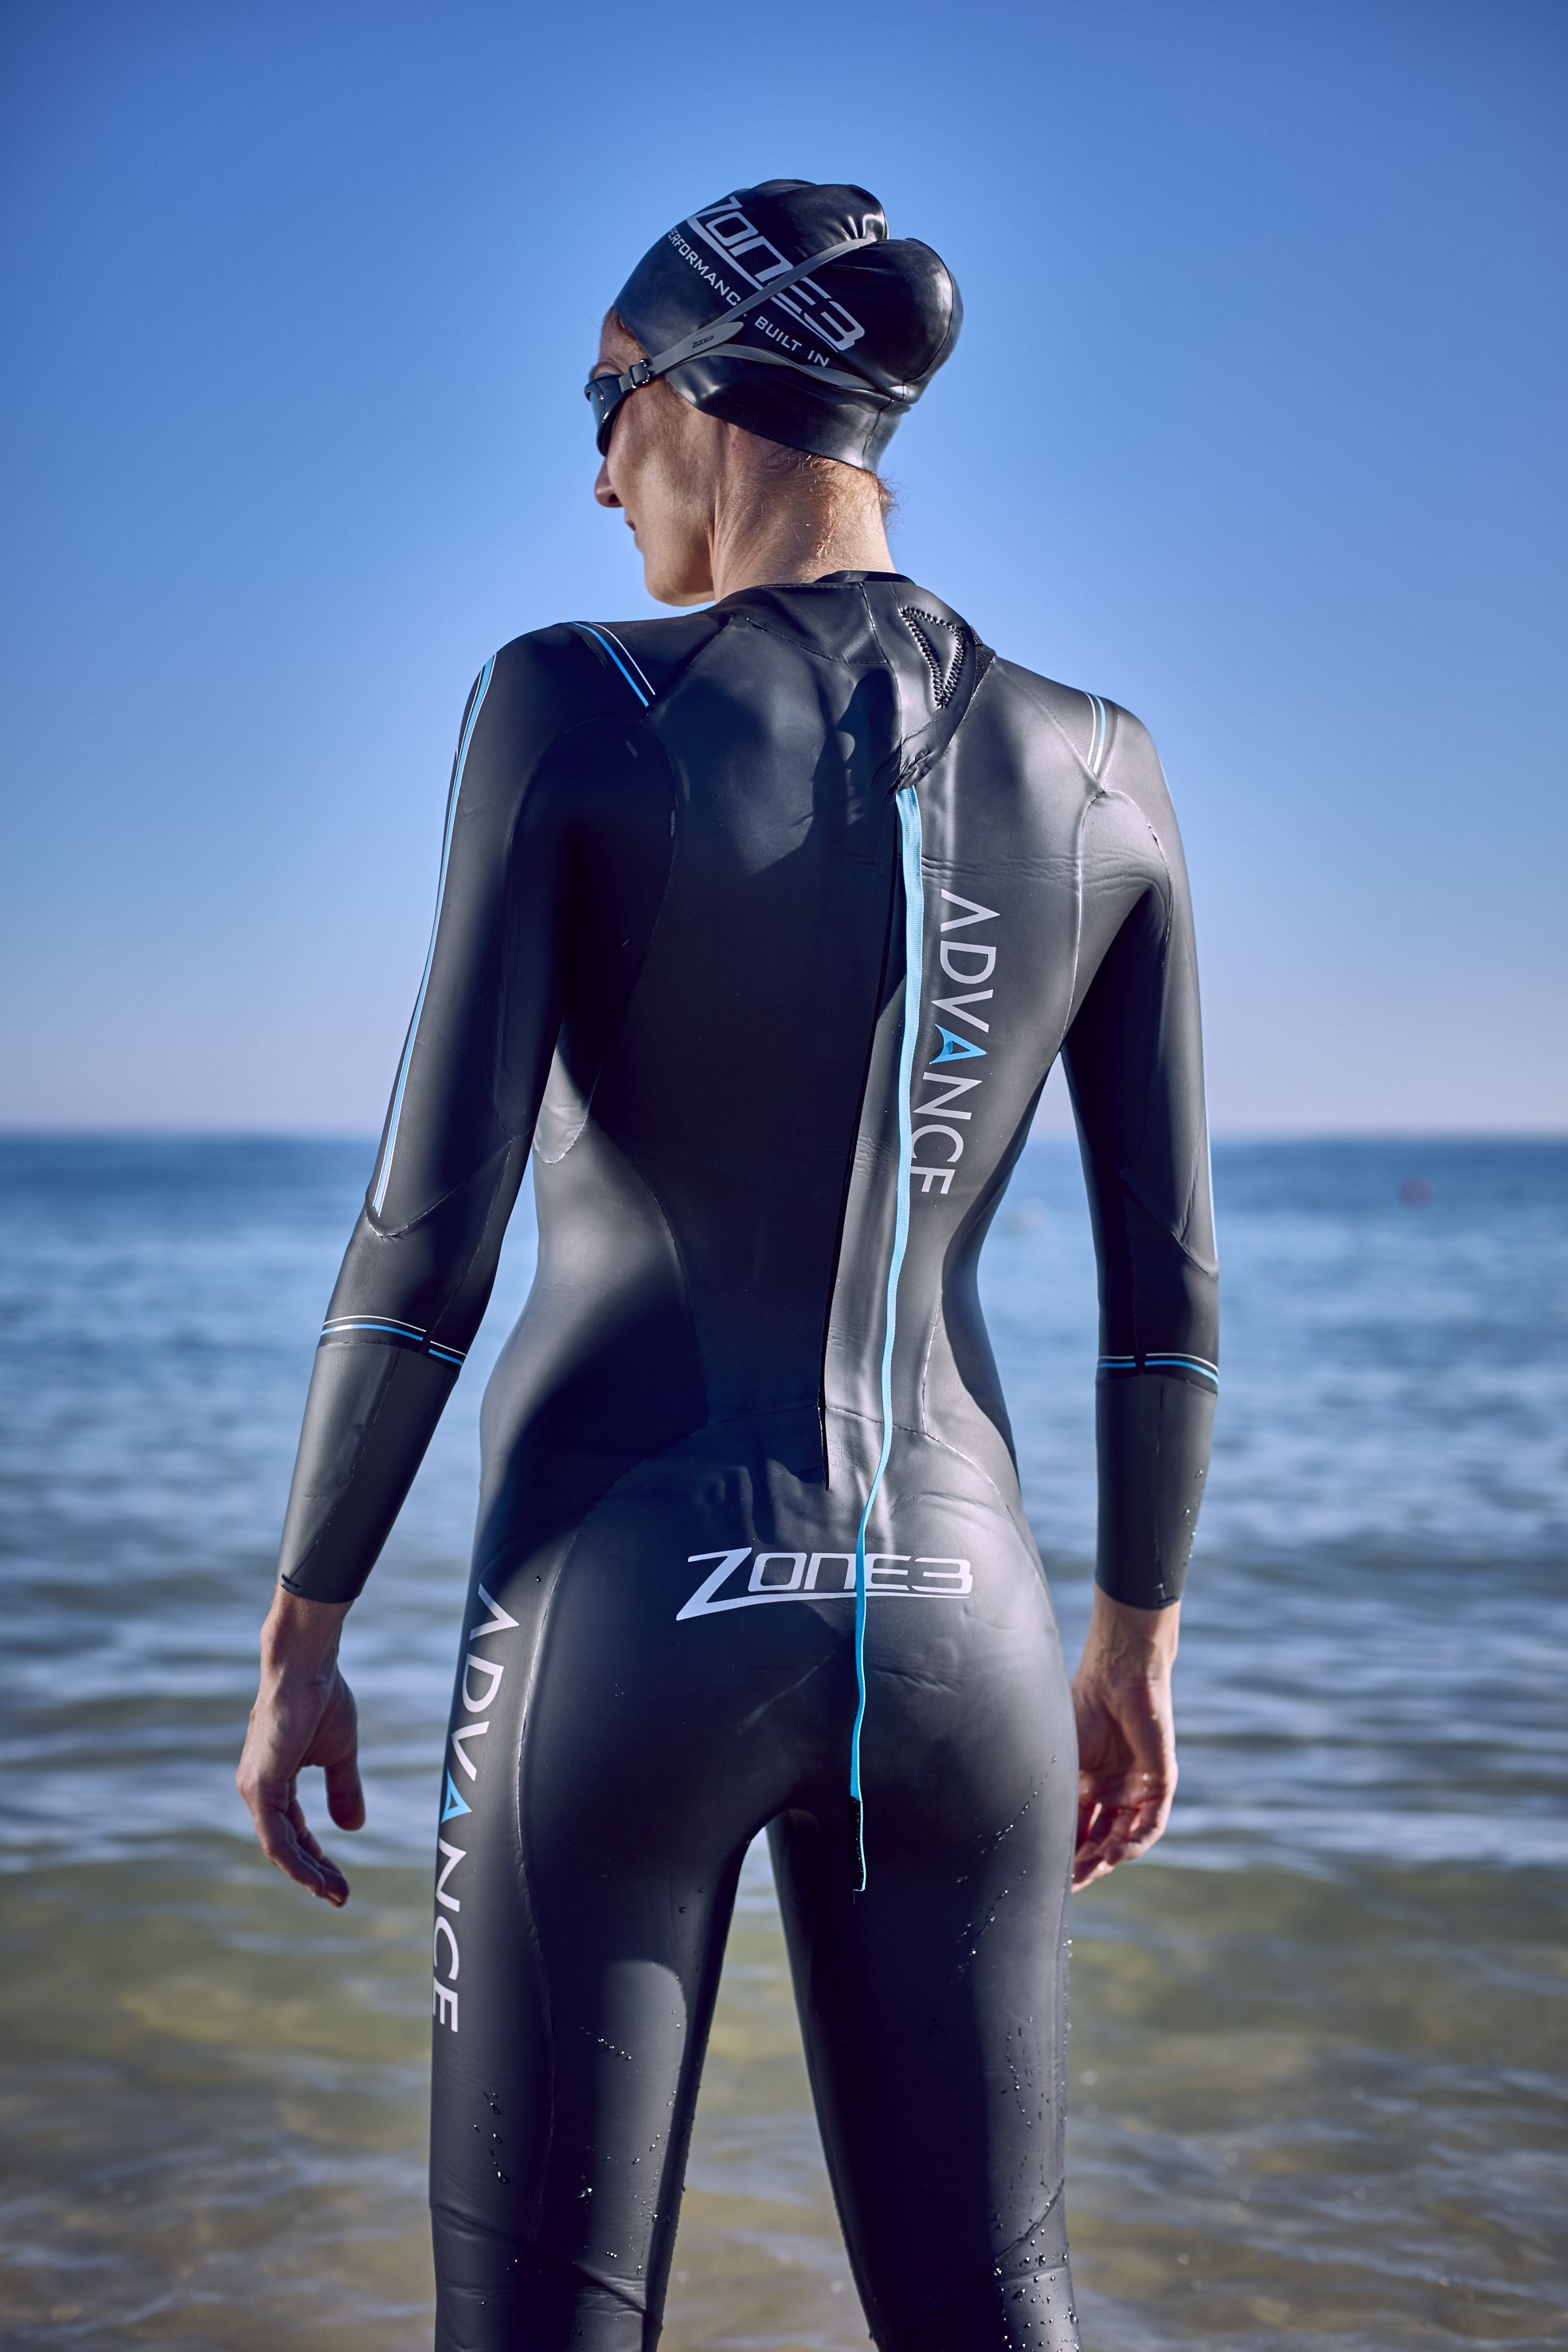 Pin by Neo on Triathlete & Swimming Women | Pinterest | Wetsuit ...